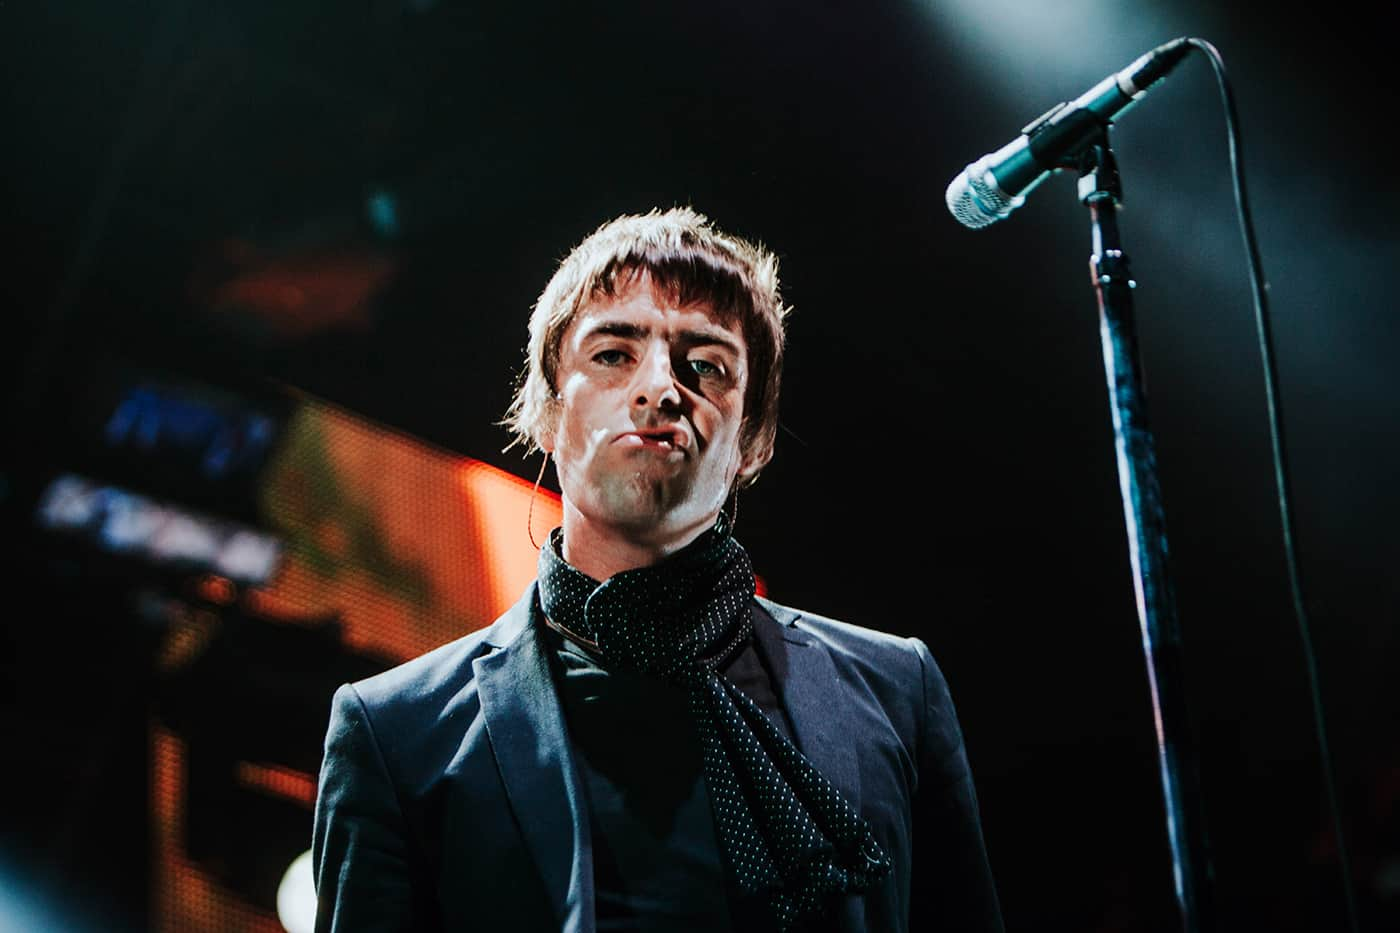 Oasis Liam Gallagher